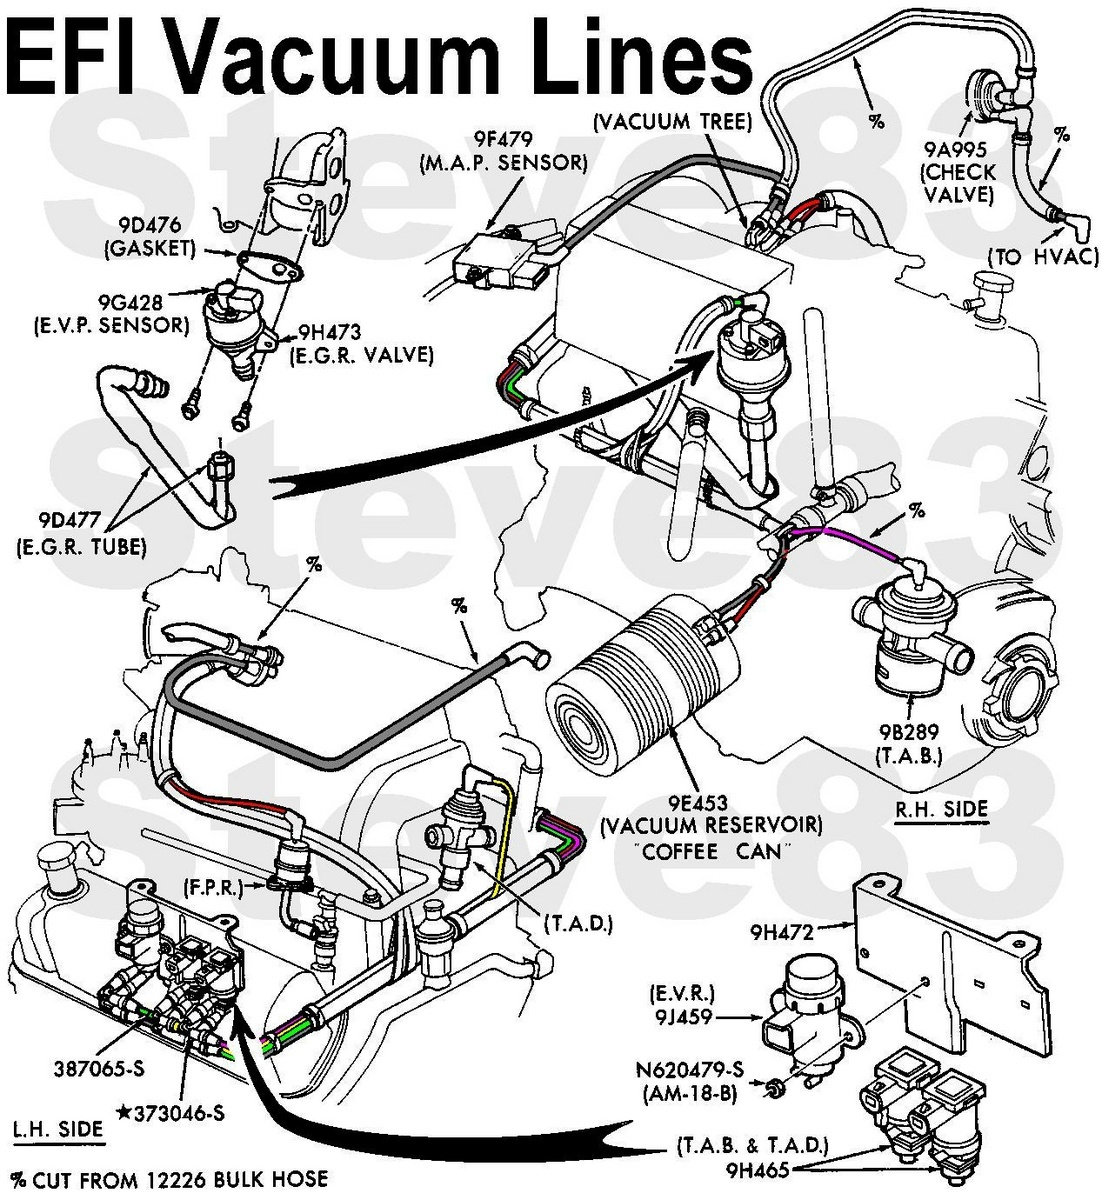 HP PartList also Whats Under The Hood Letting The Outside In moreover 74c5u Grand Cherokee Whereh Cam Position Sensor Located additionally Discussion T1017 ds610030 furthermore 92 Jeep Cherokee Horn Location. on wiring diagram for 1991 jeep wrangler